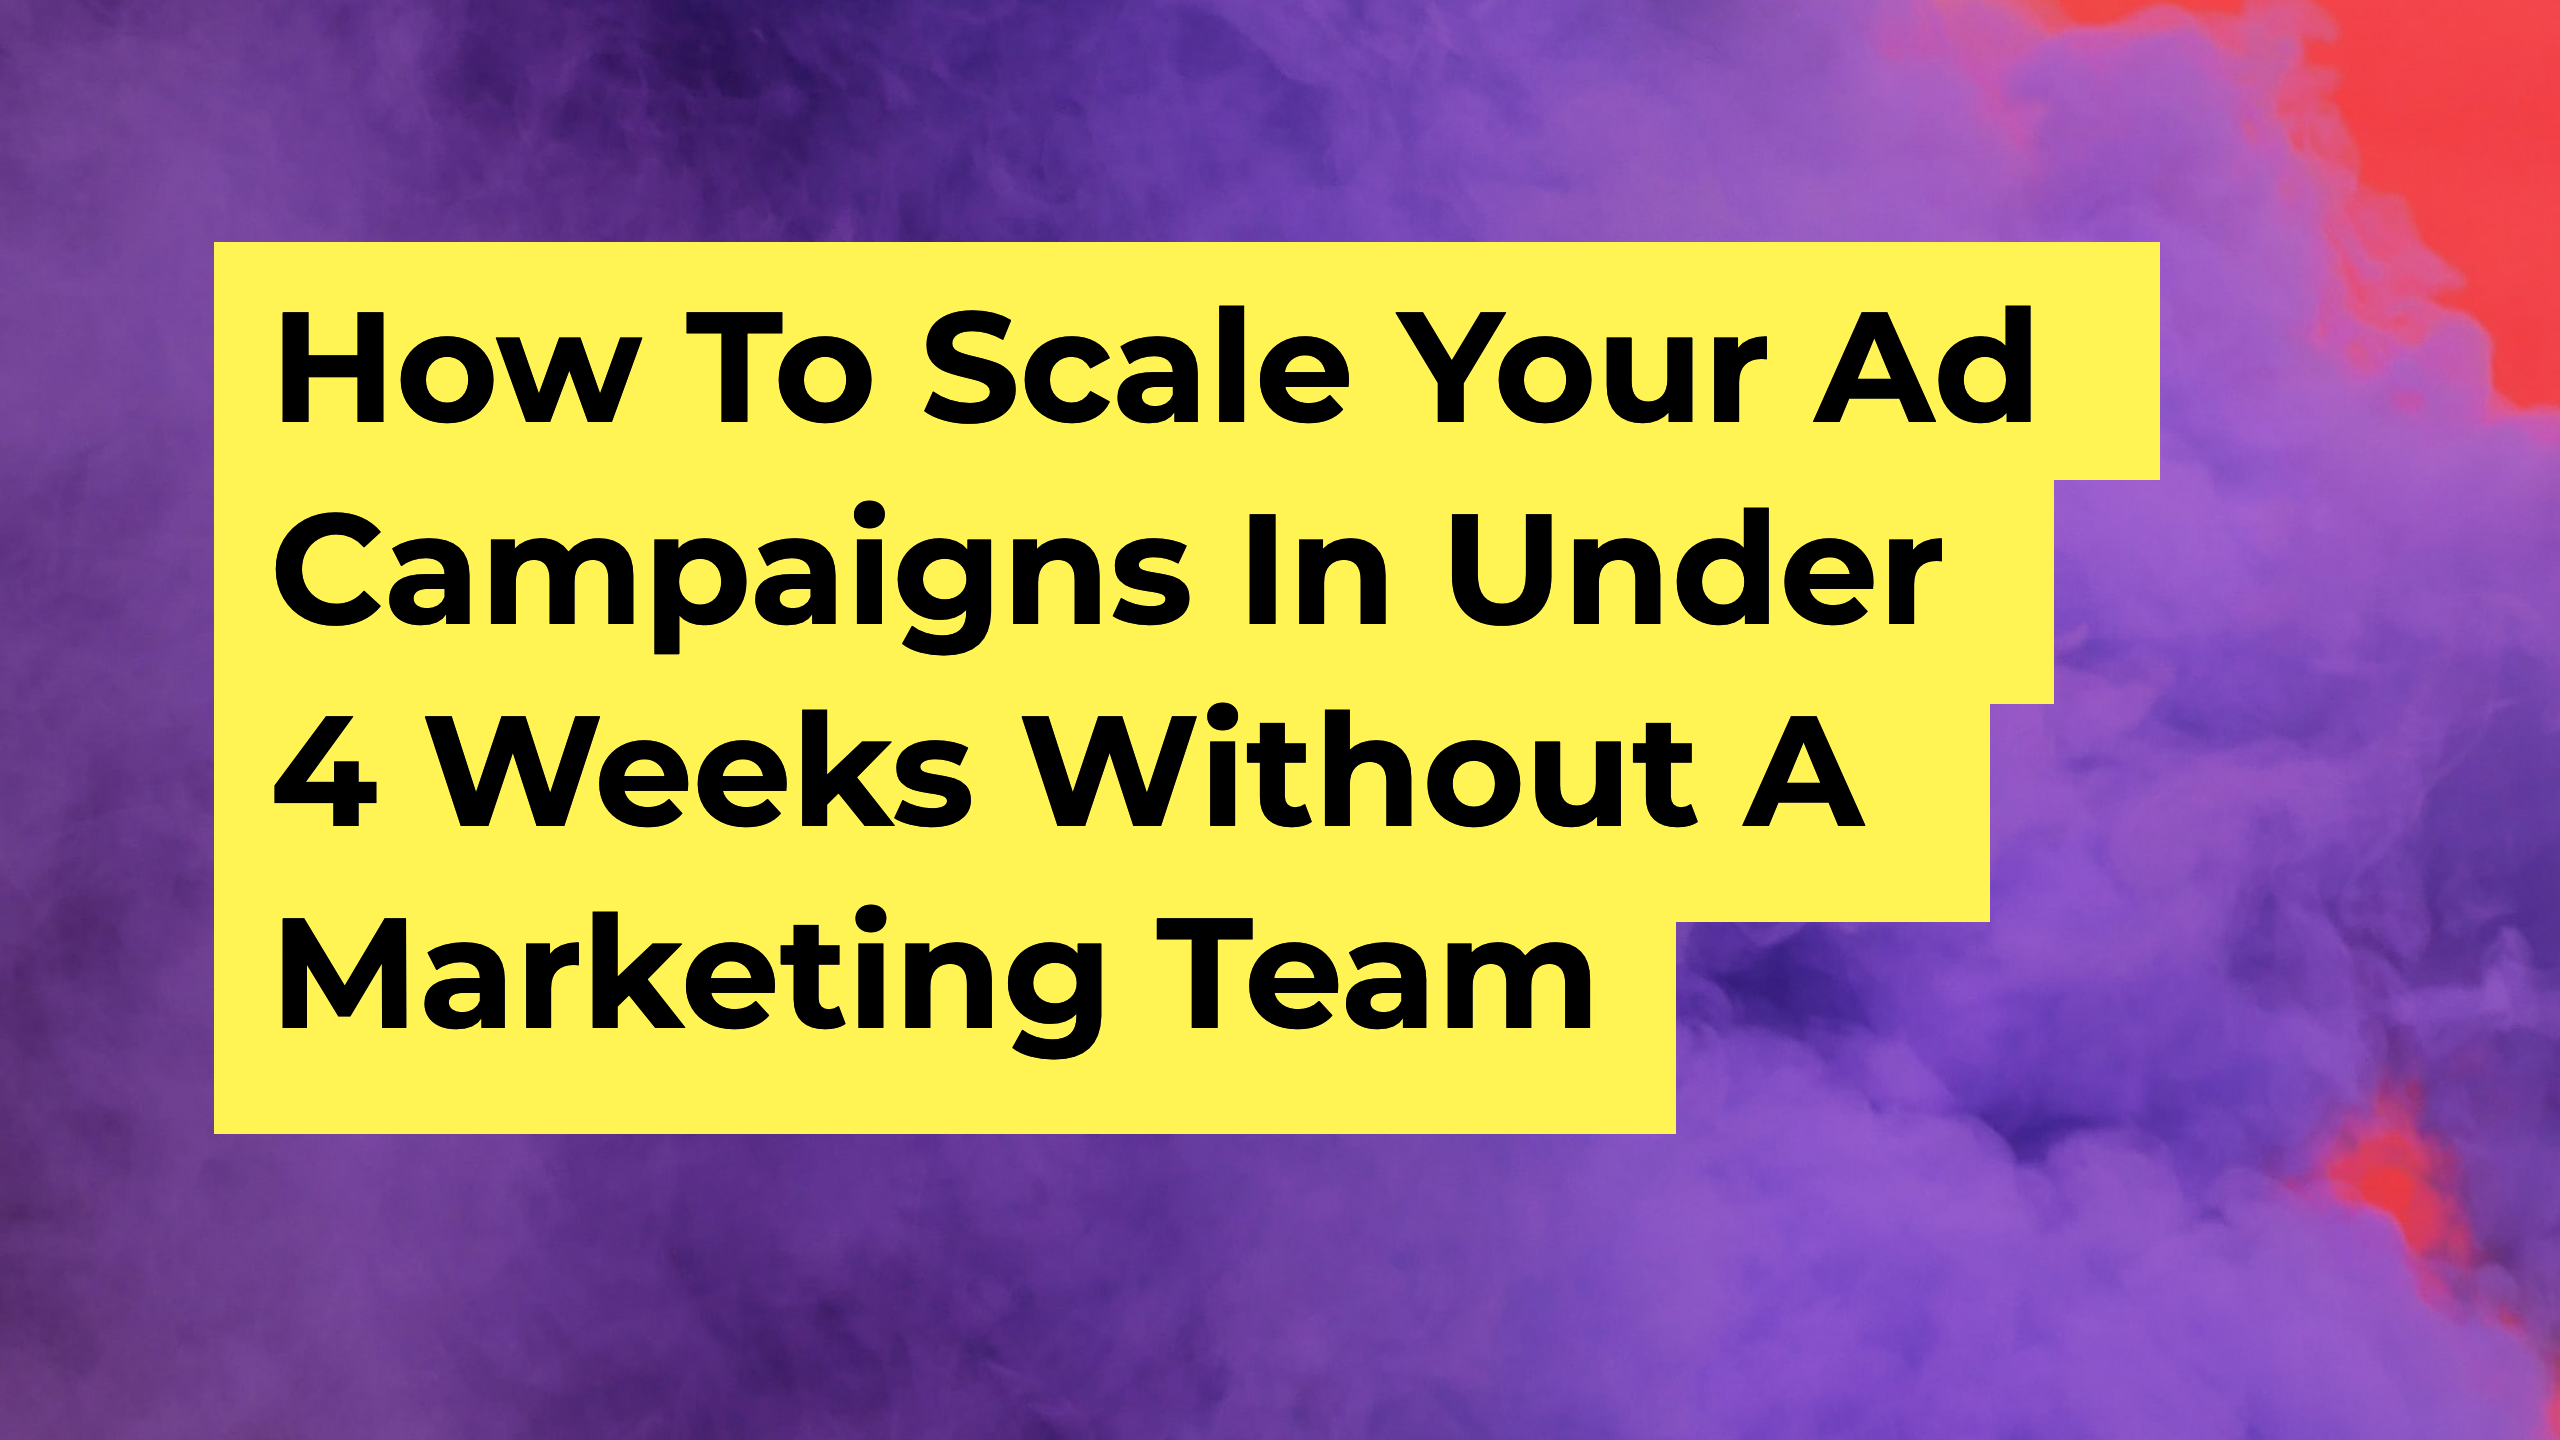 How To Scale Your Ad Campaigns In Under 4 Weeks Without A Marketing Team